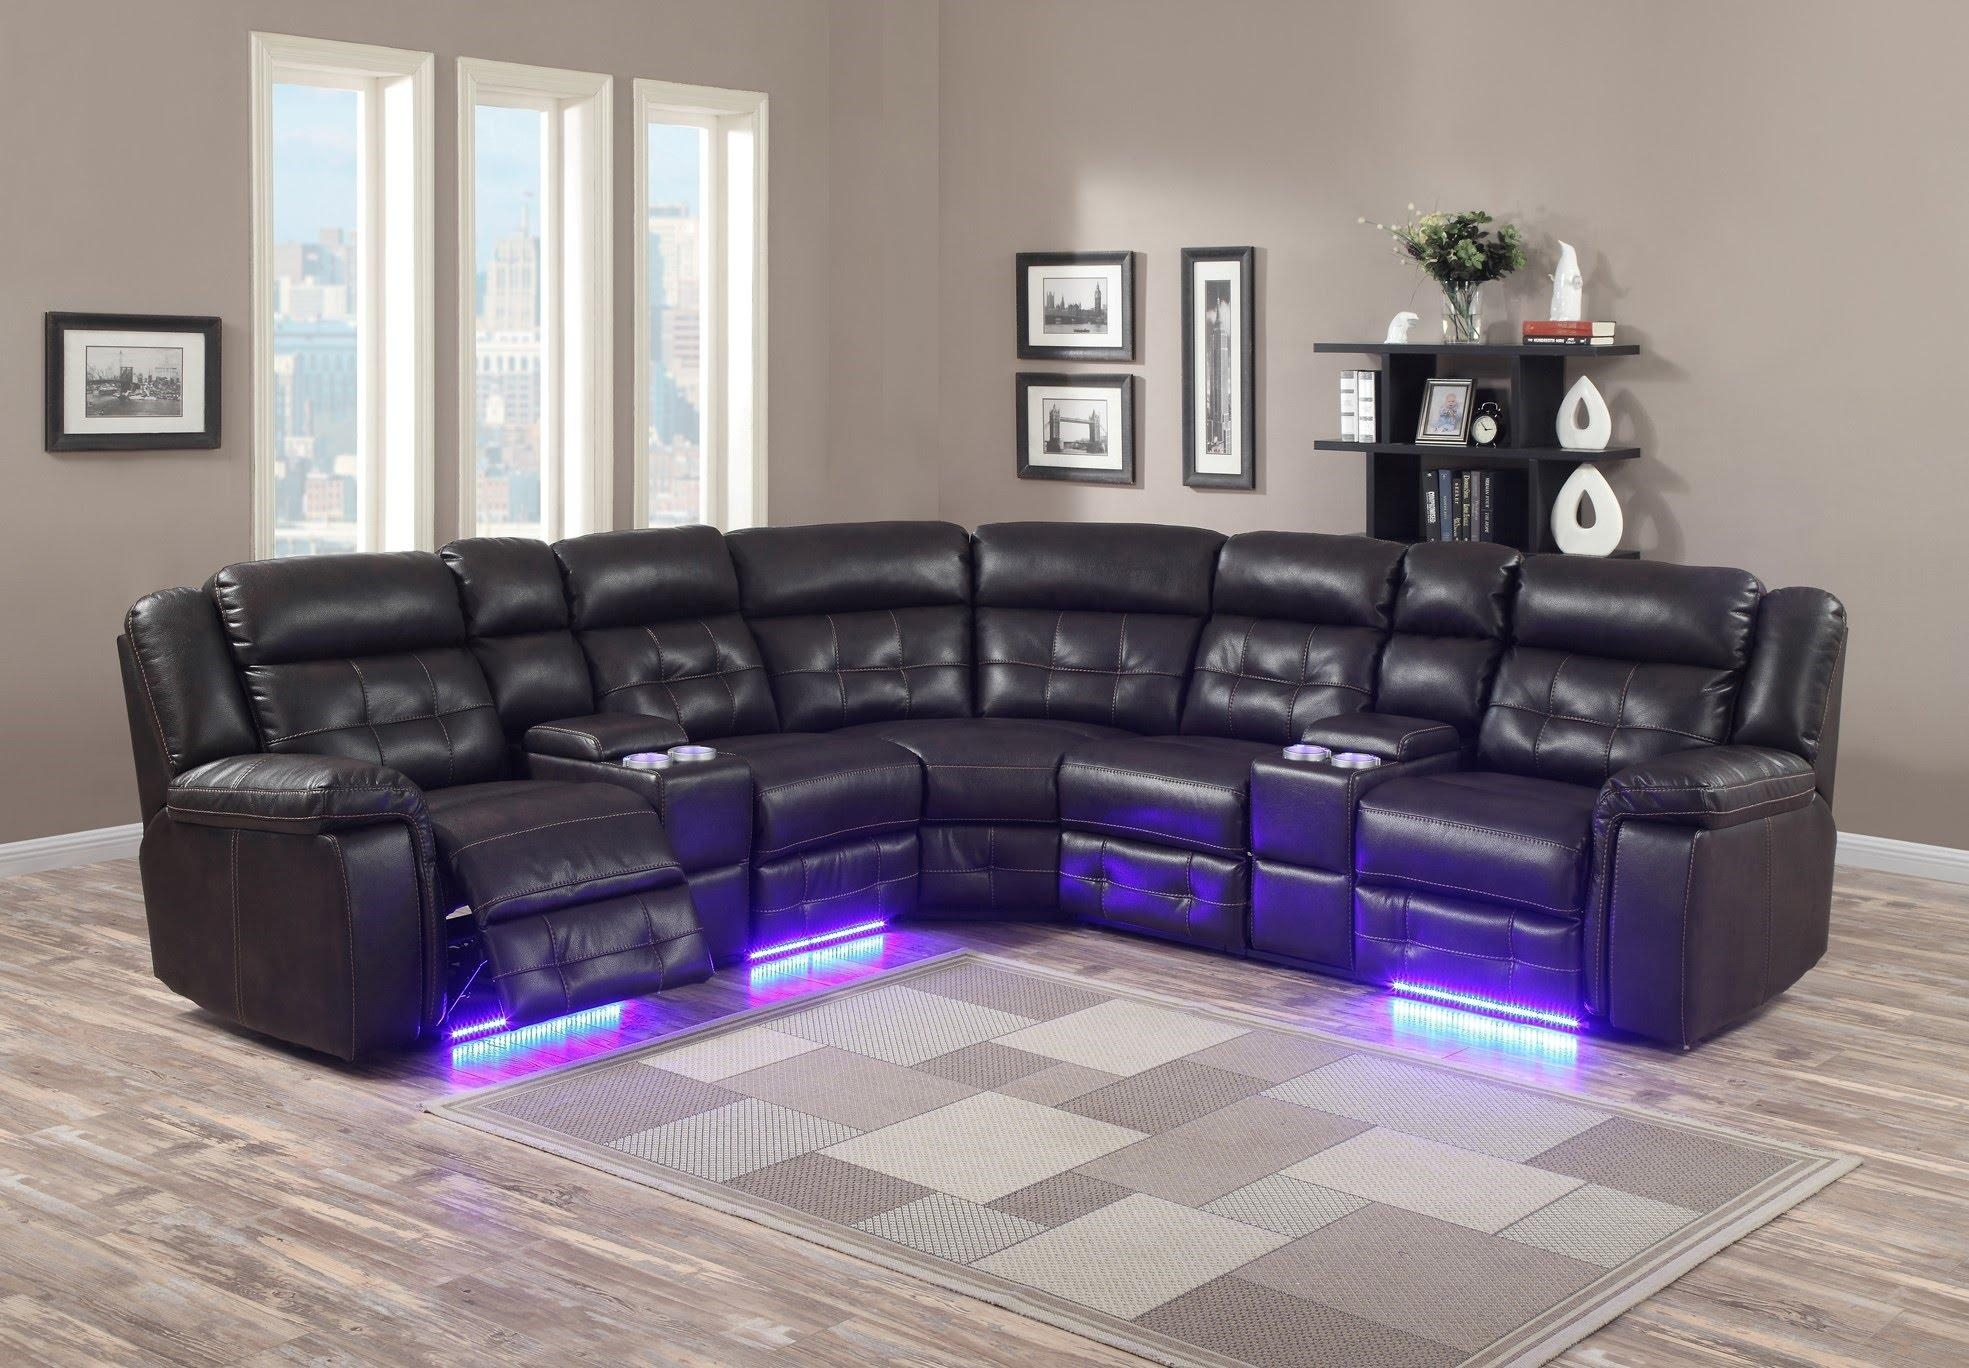 Corner Couches For Sale 21 43 Choices Of Sofas With Lights Sofa Ideas